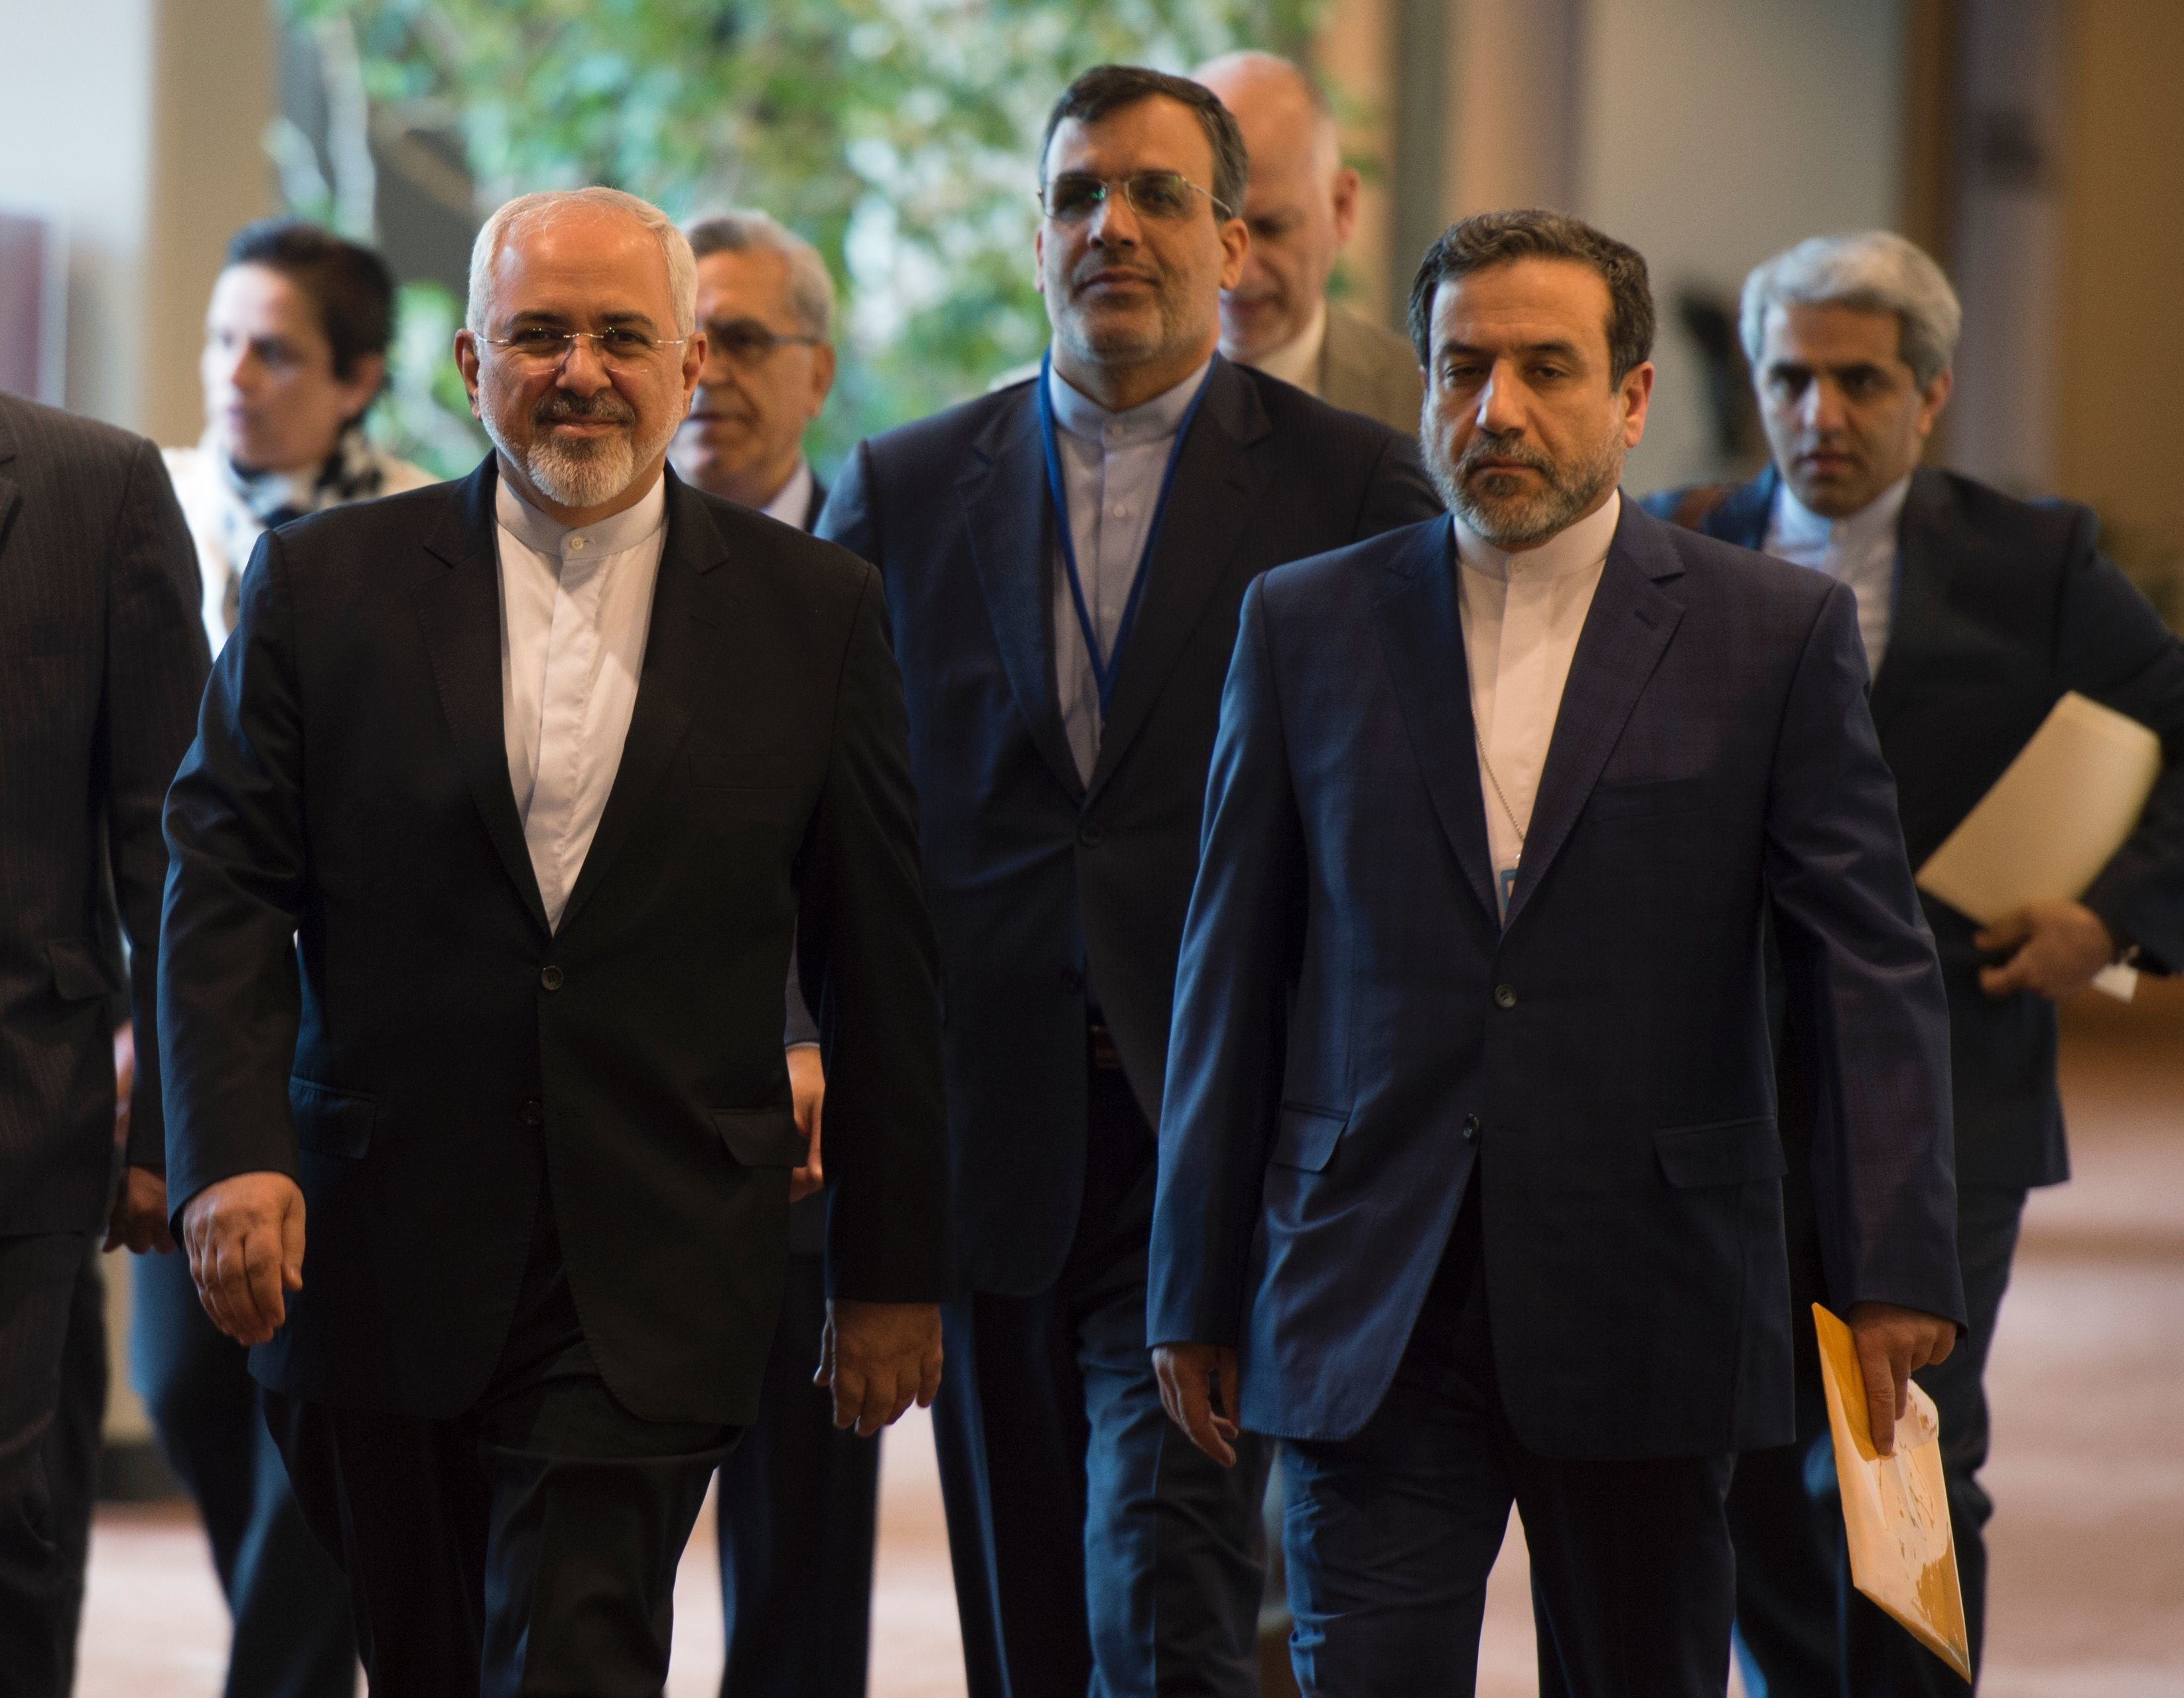 Iran's Foreign Minister Mohammad Javad Zarif(L) arrives for a meeting with US Secretary of State John Kerry April 19, 2016 at